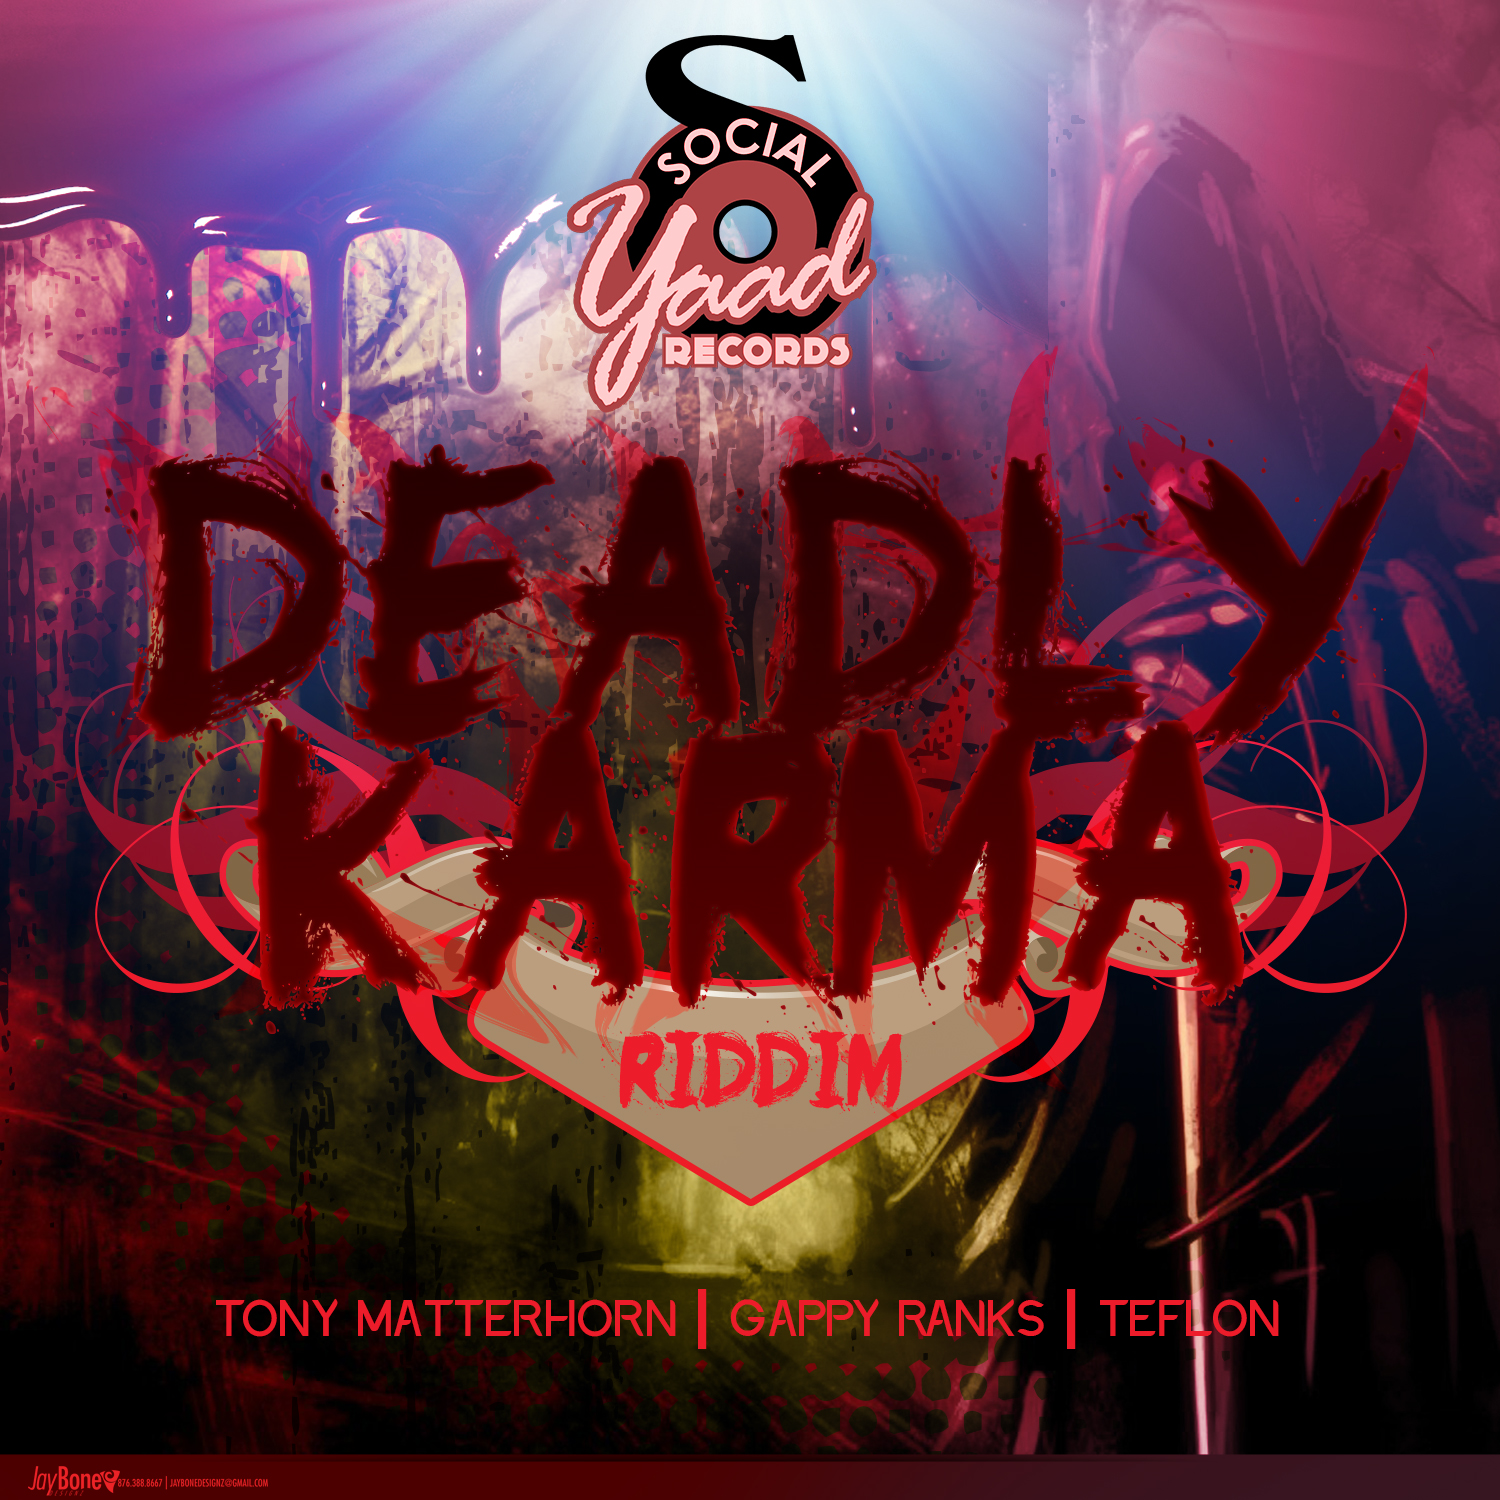 Deadly-Karma-Riddim-SocialYaad-Records-Cover